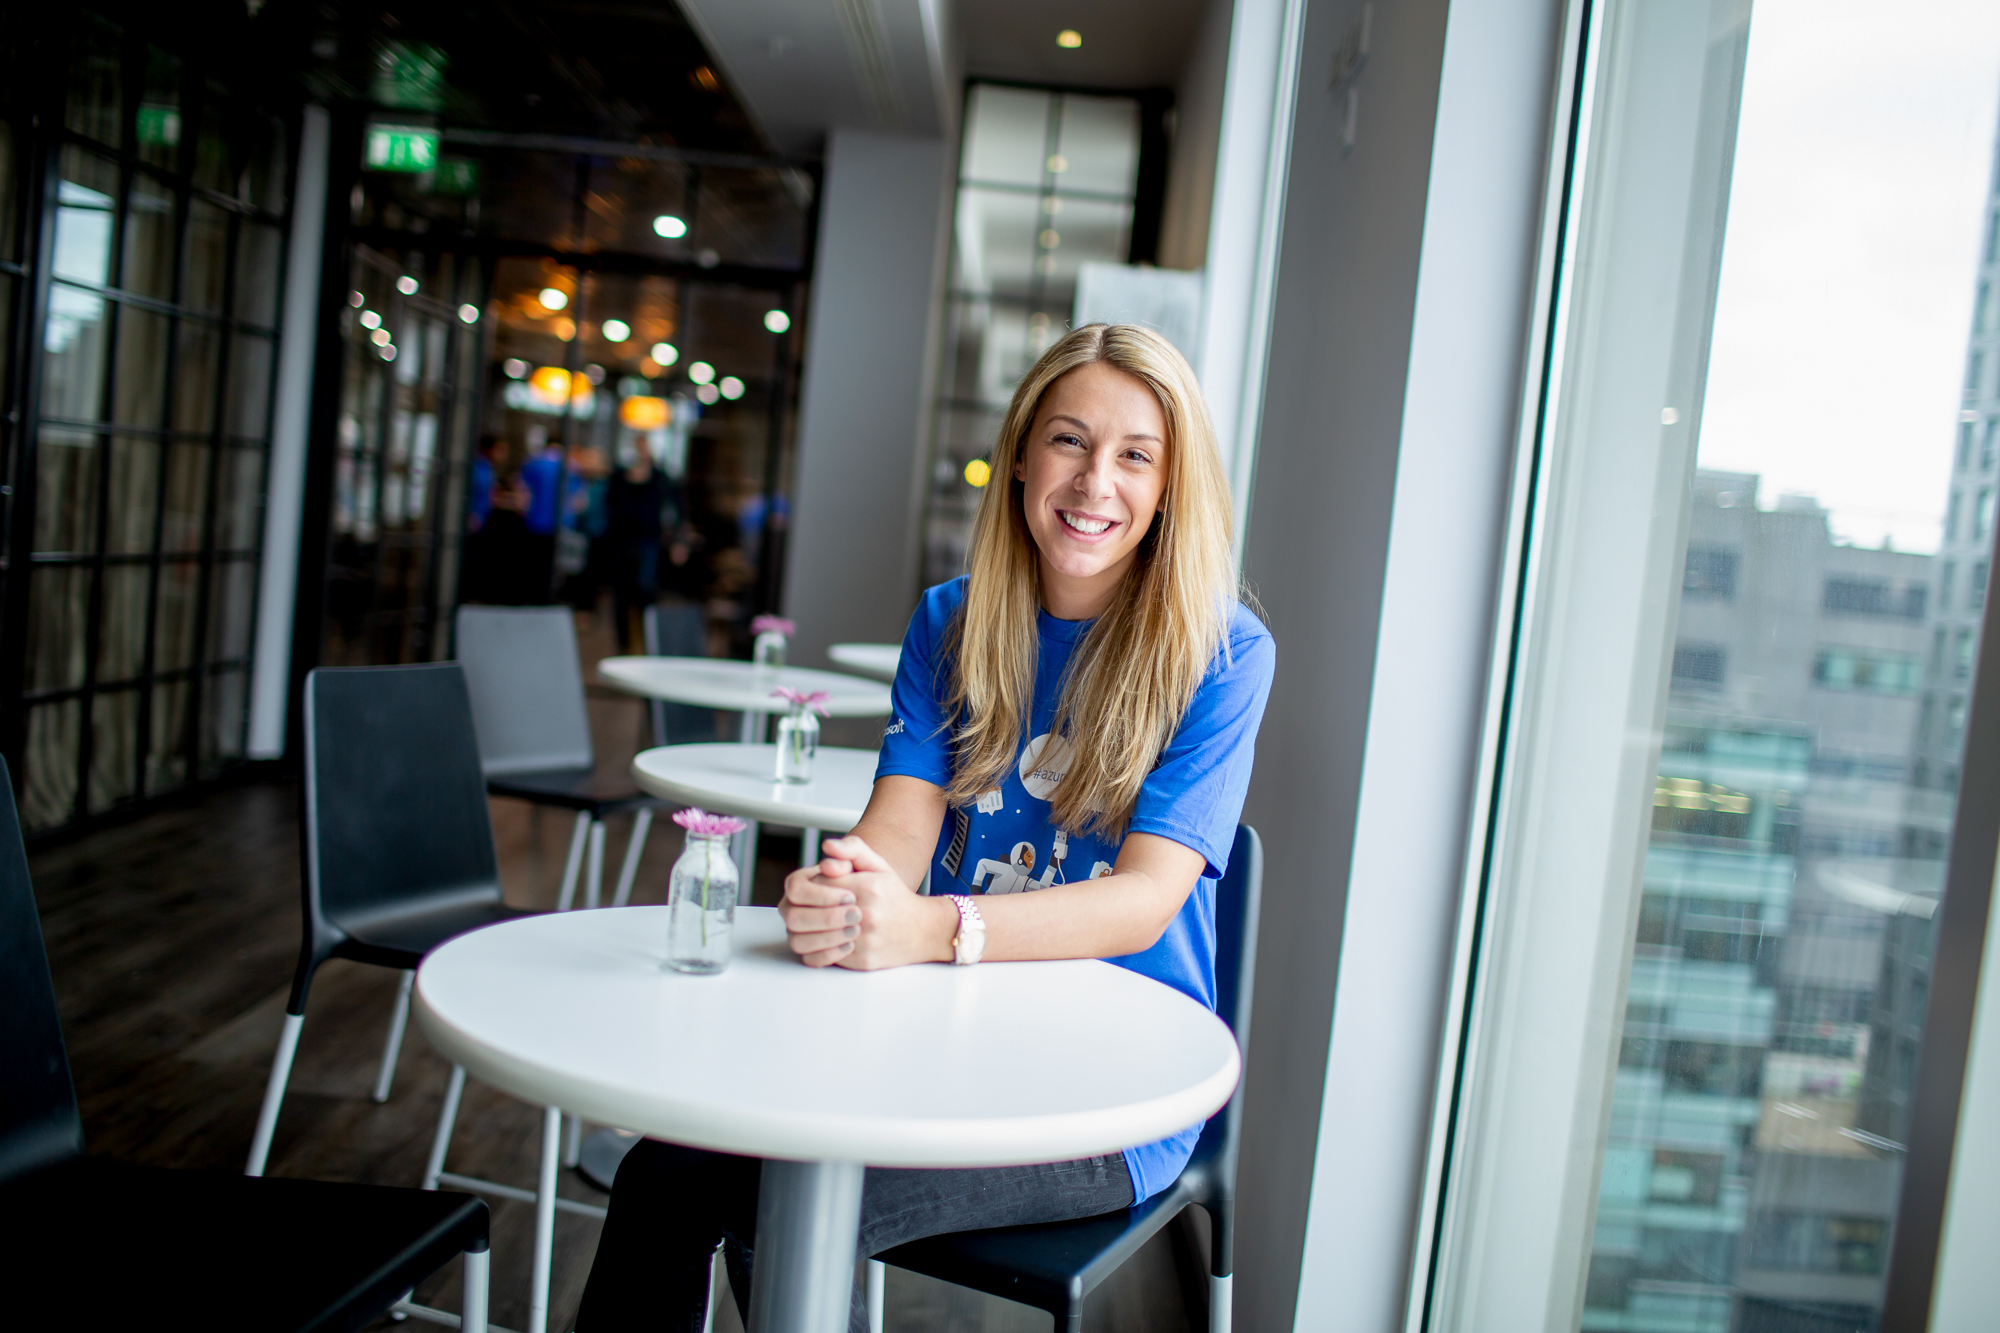 microsoft_portraits_in_Liverpool_manchester